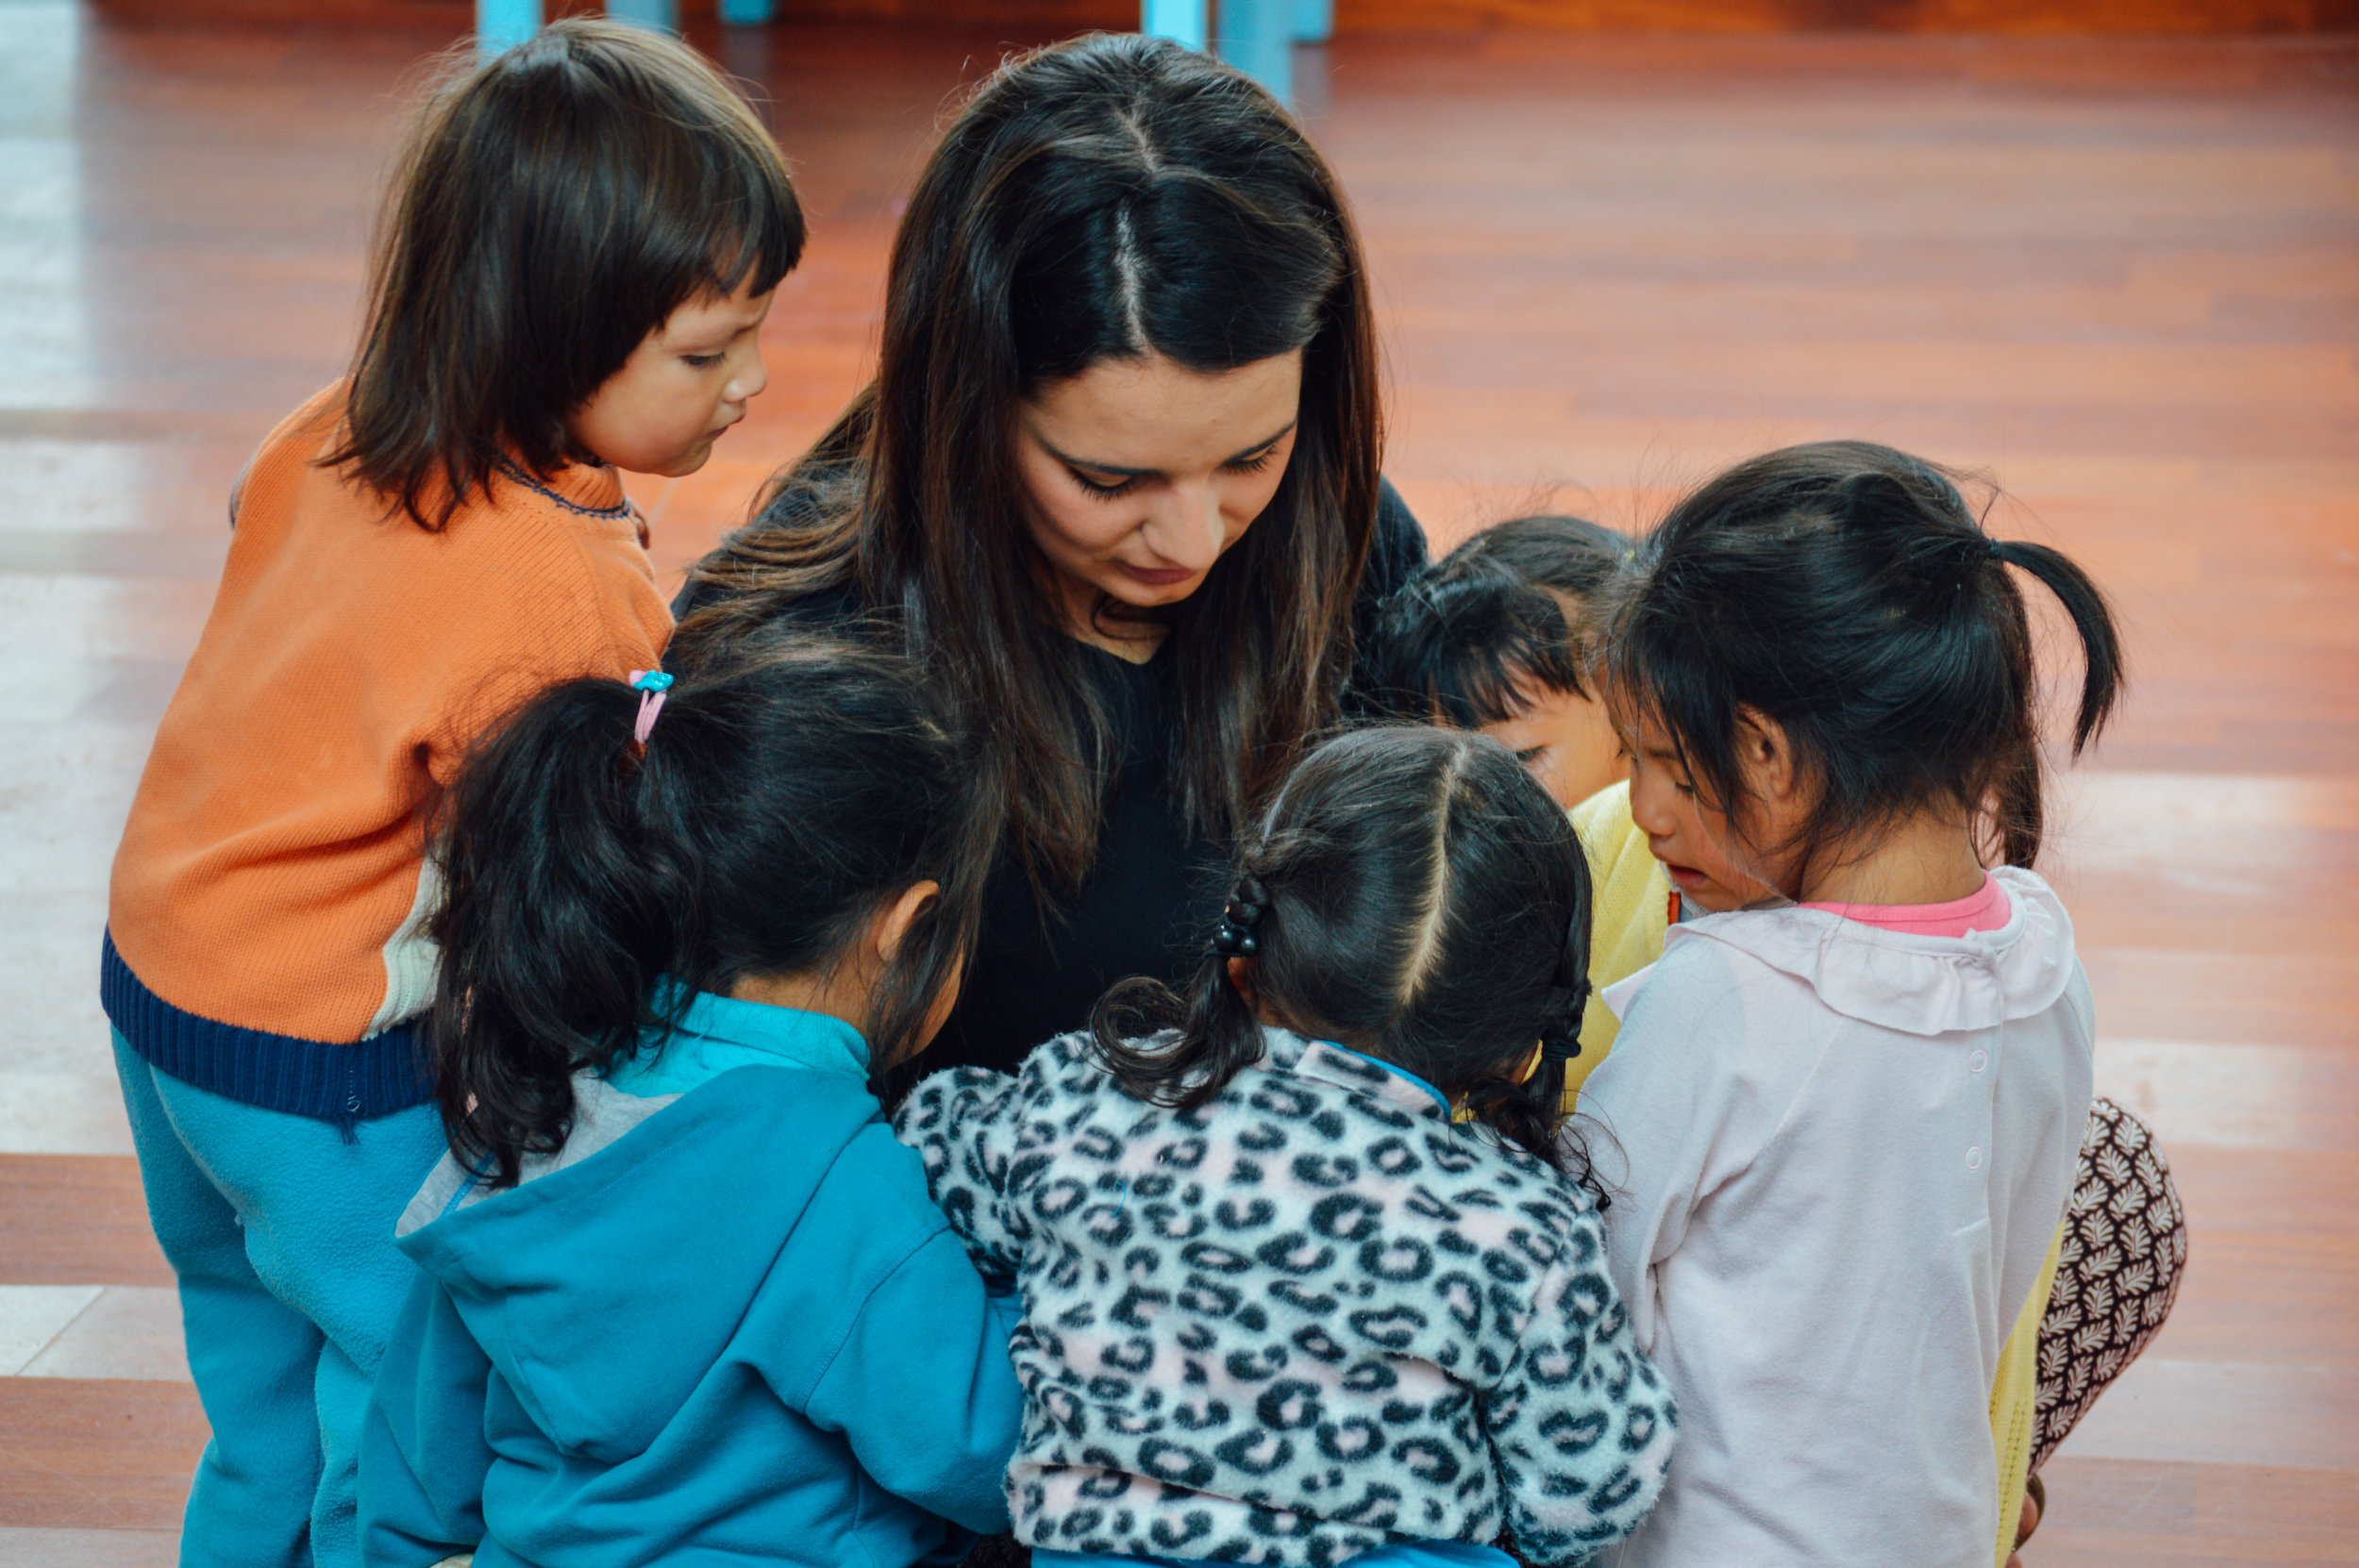 Help orphans reach their potential by volunteering in third world countries with Orphanage Support Services Organization.